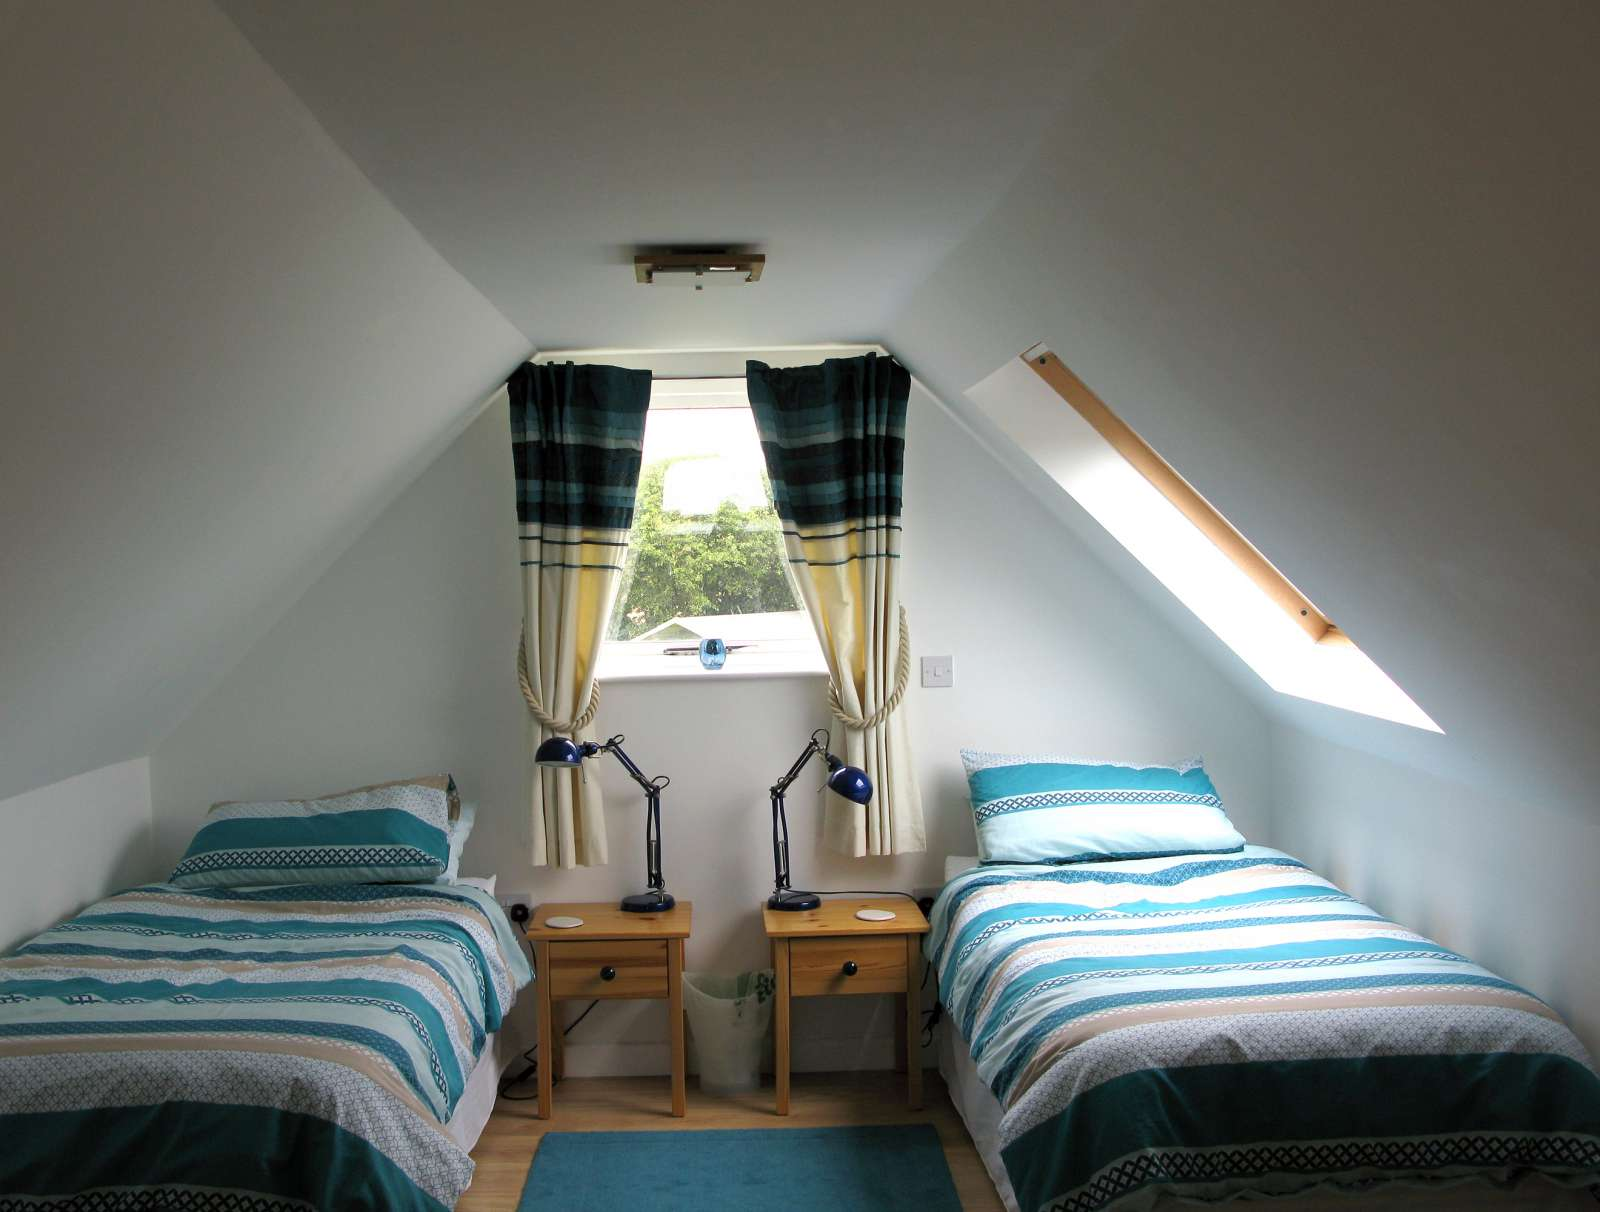 Holiday rental Cottage in Shorwell - The twin room has two single beds and a pull out futon. Bedside tables and chest of drawers.